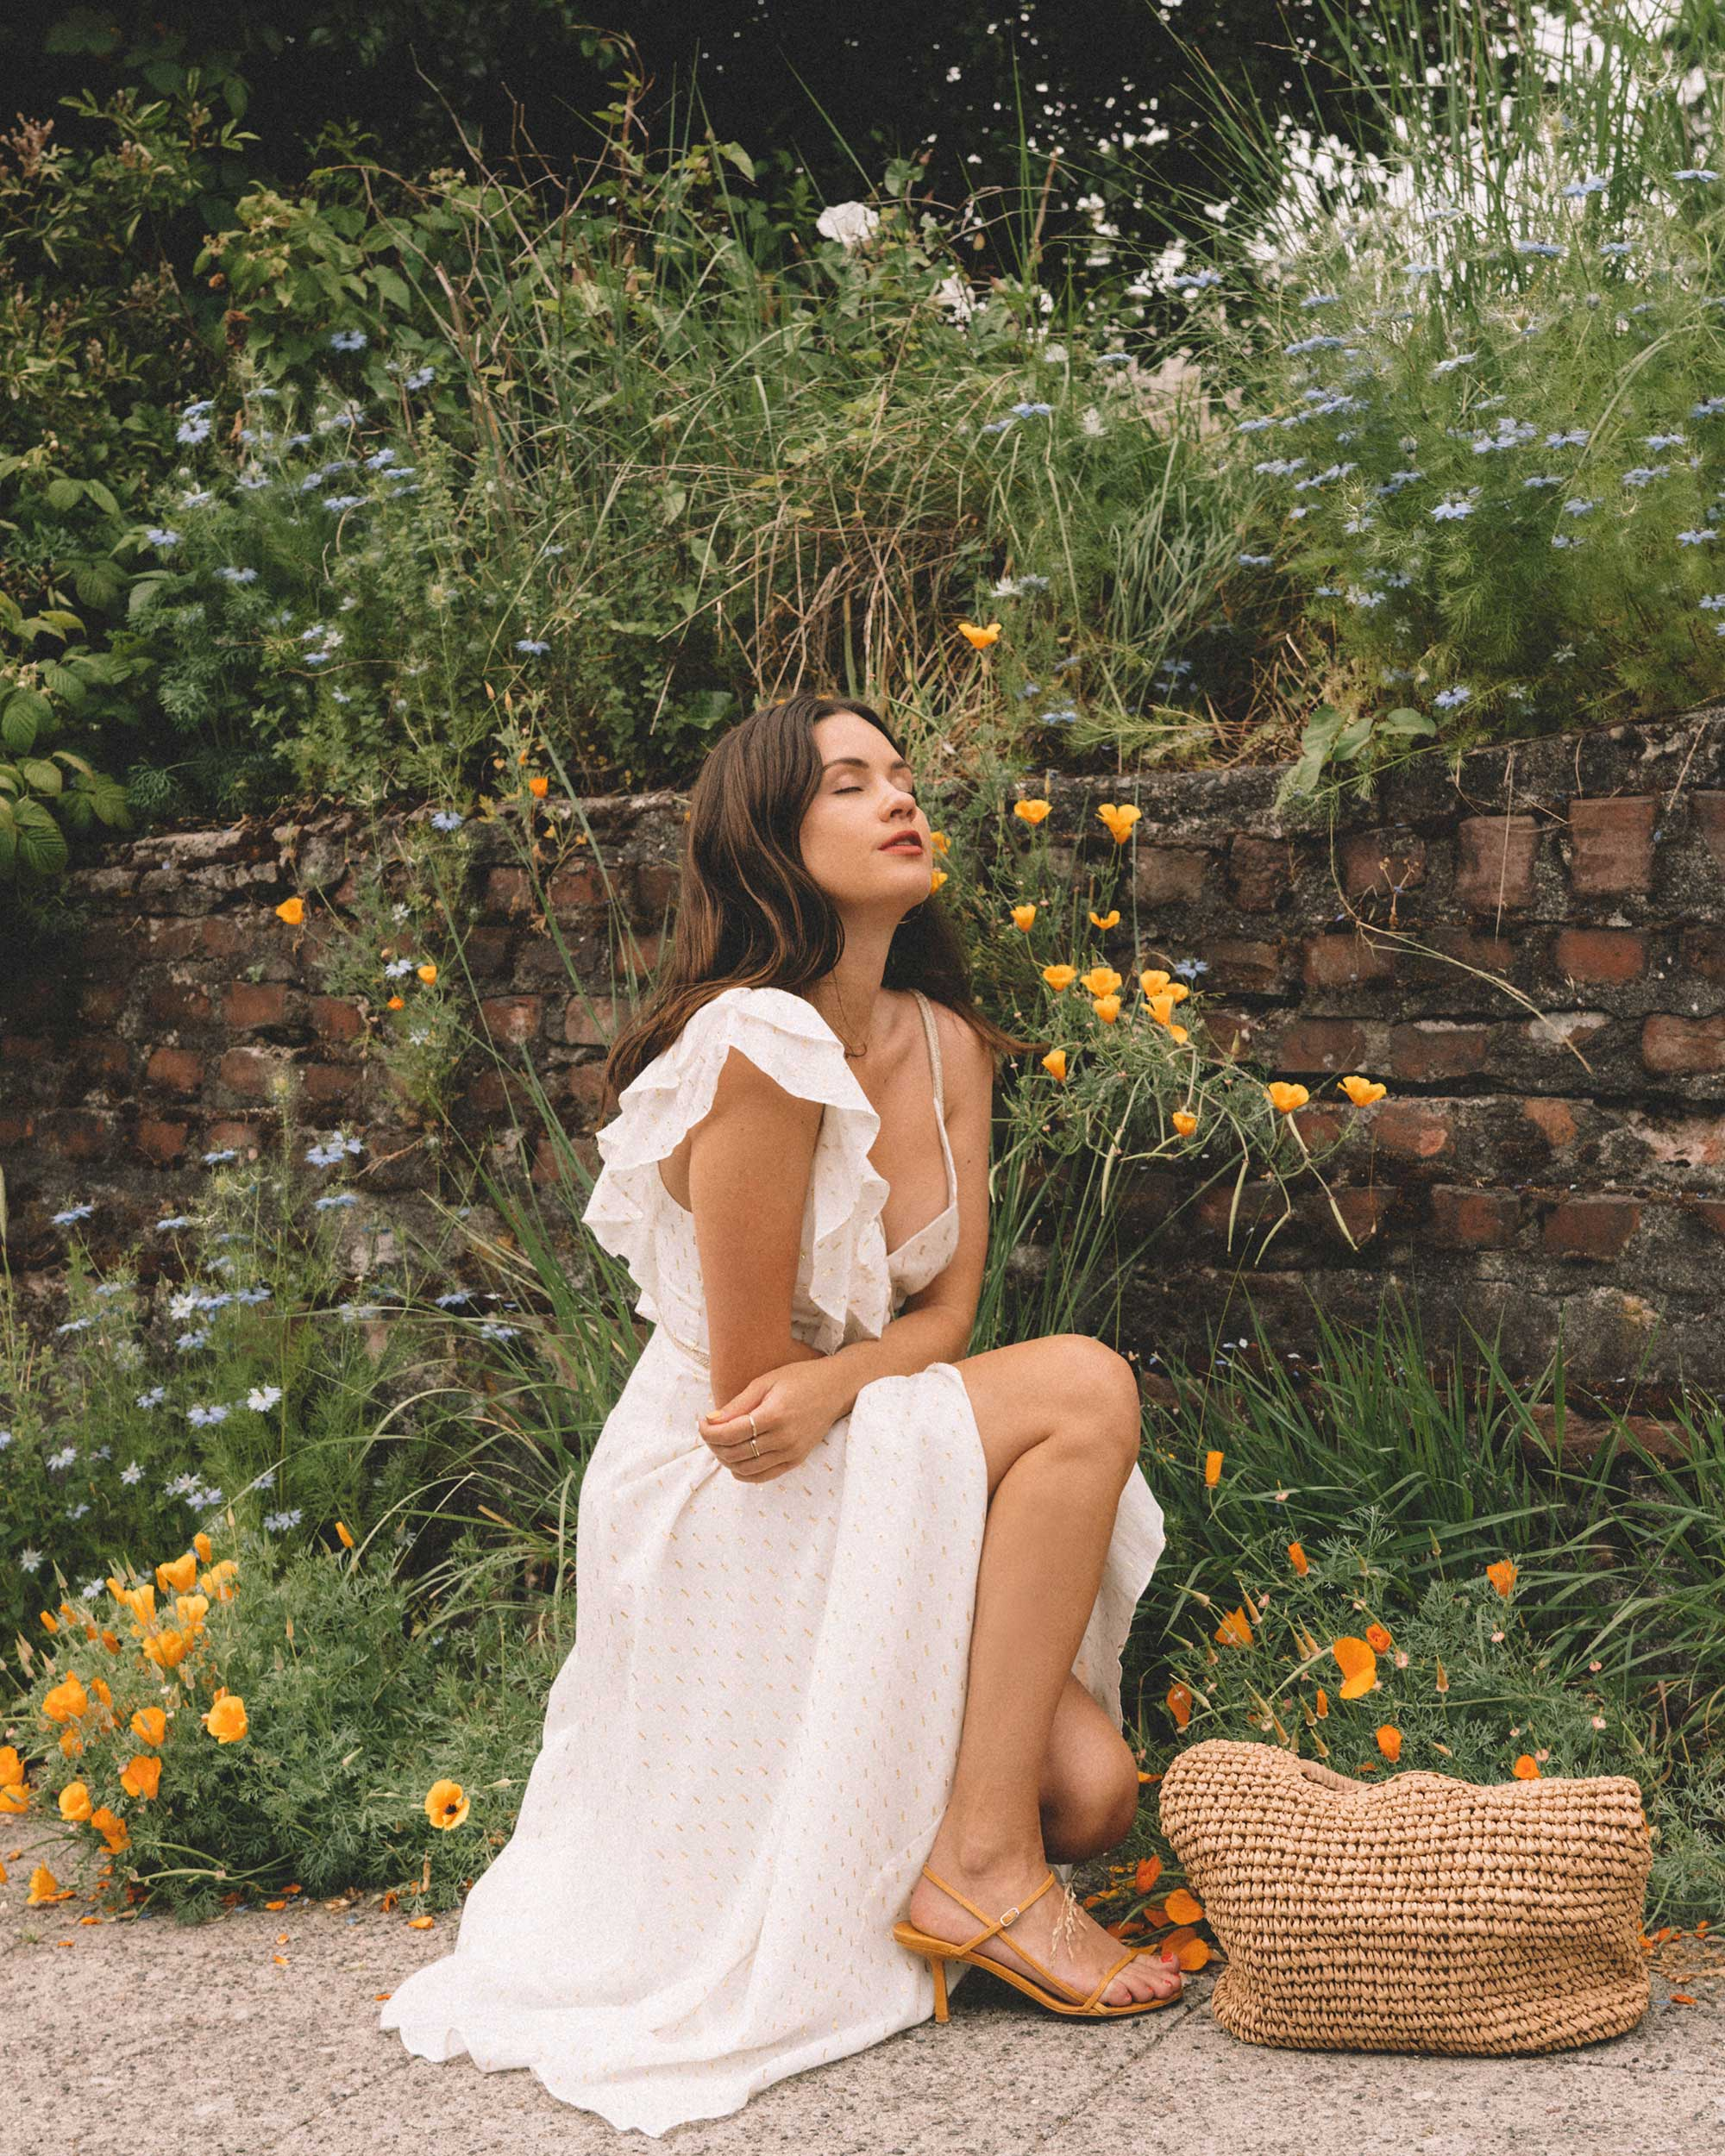 Sarah Butler of Sarah Styles Seattle wears BCBGMAXAZRIA White Asymmetric Midi Wrap Dress for the perfect summer outfit | @sarahchristine.jpg